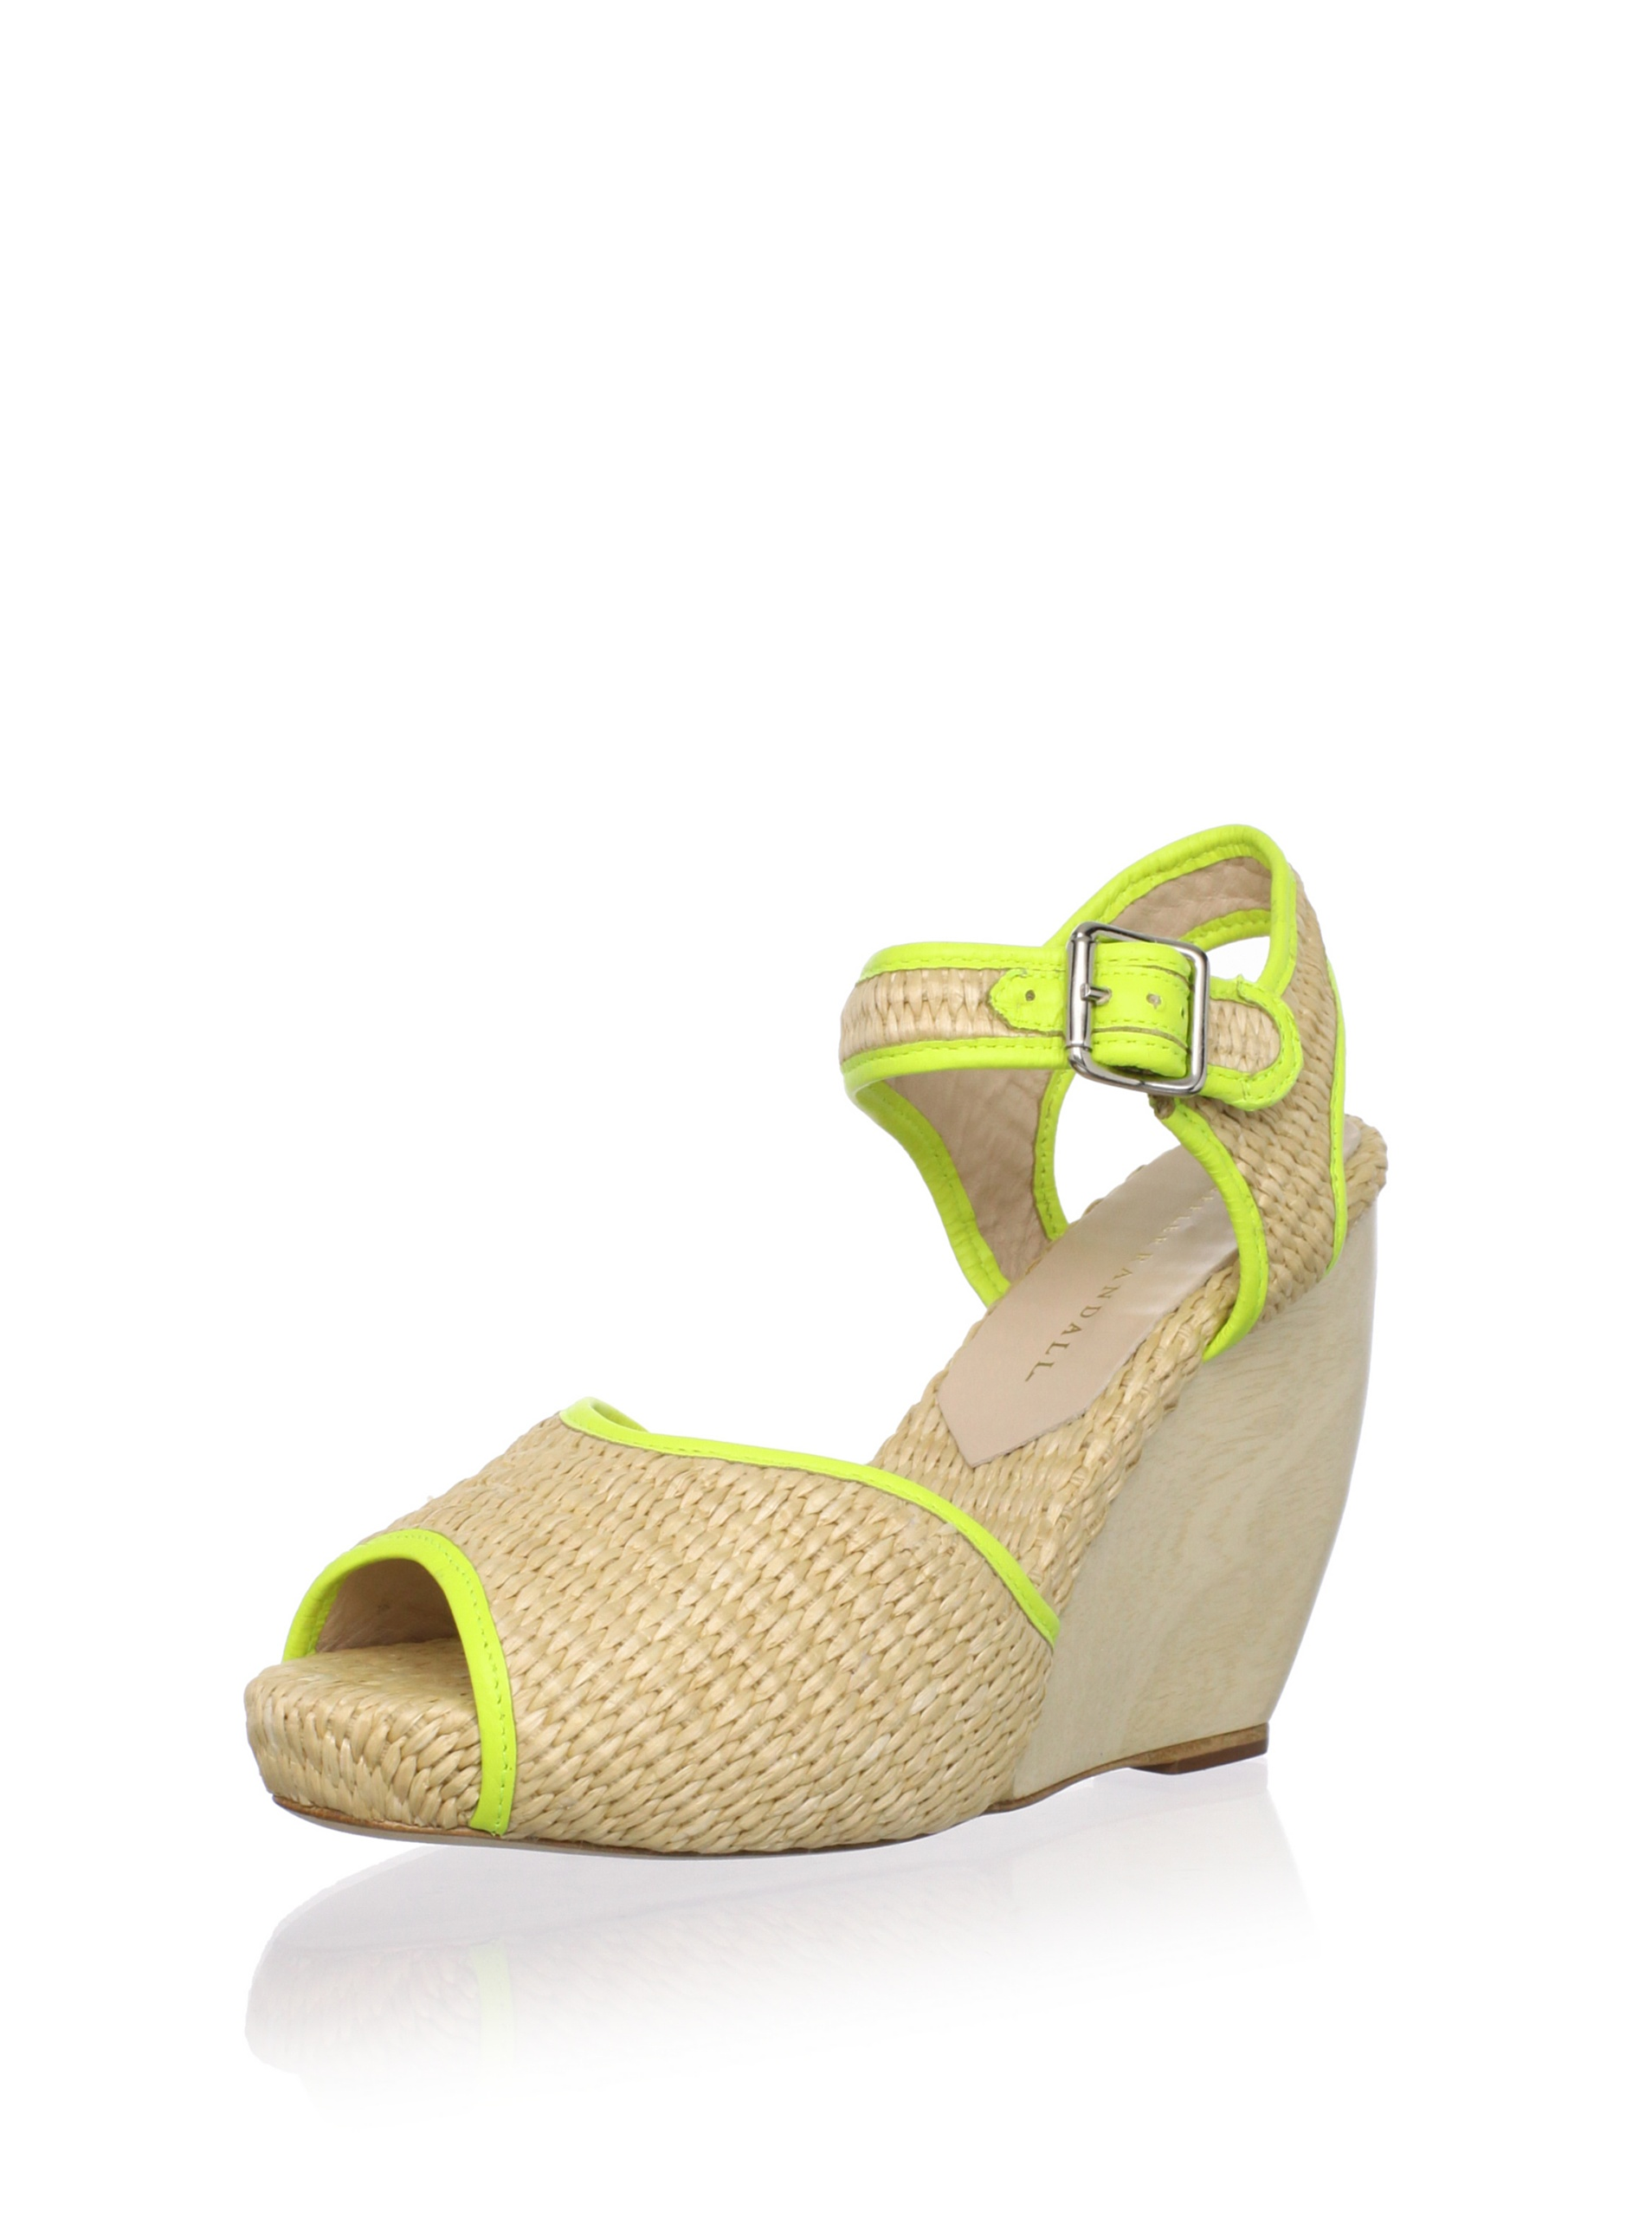 Loeffler Randall Women's Valentine Wedge Sandal (Natural/Acid)